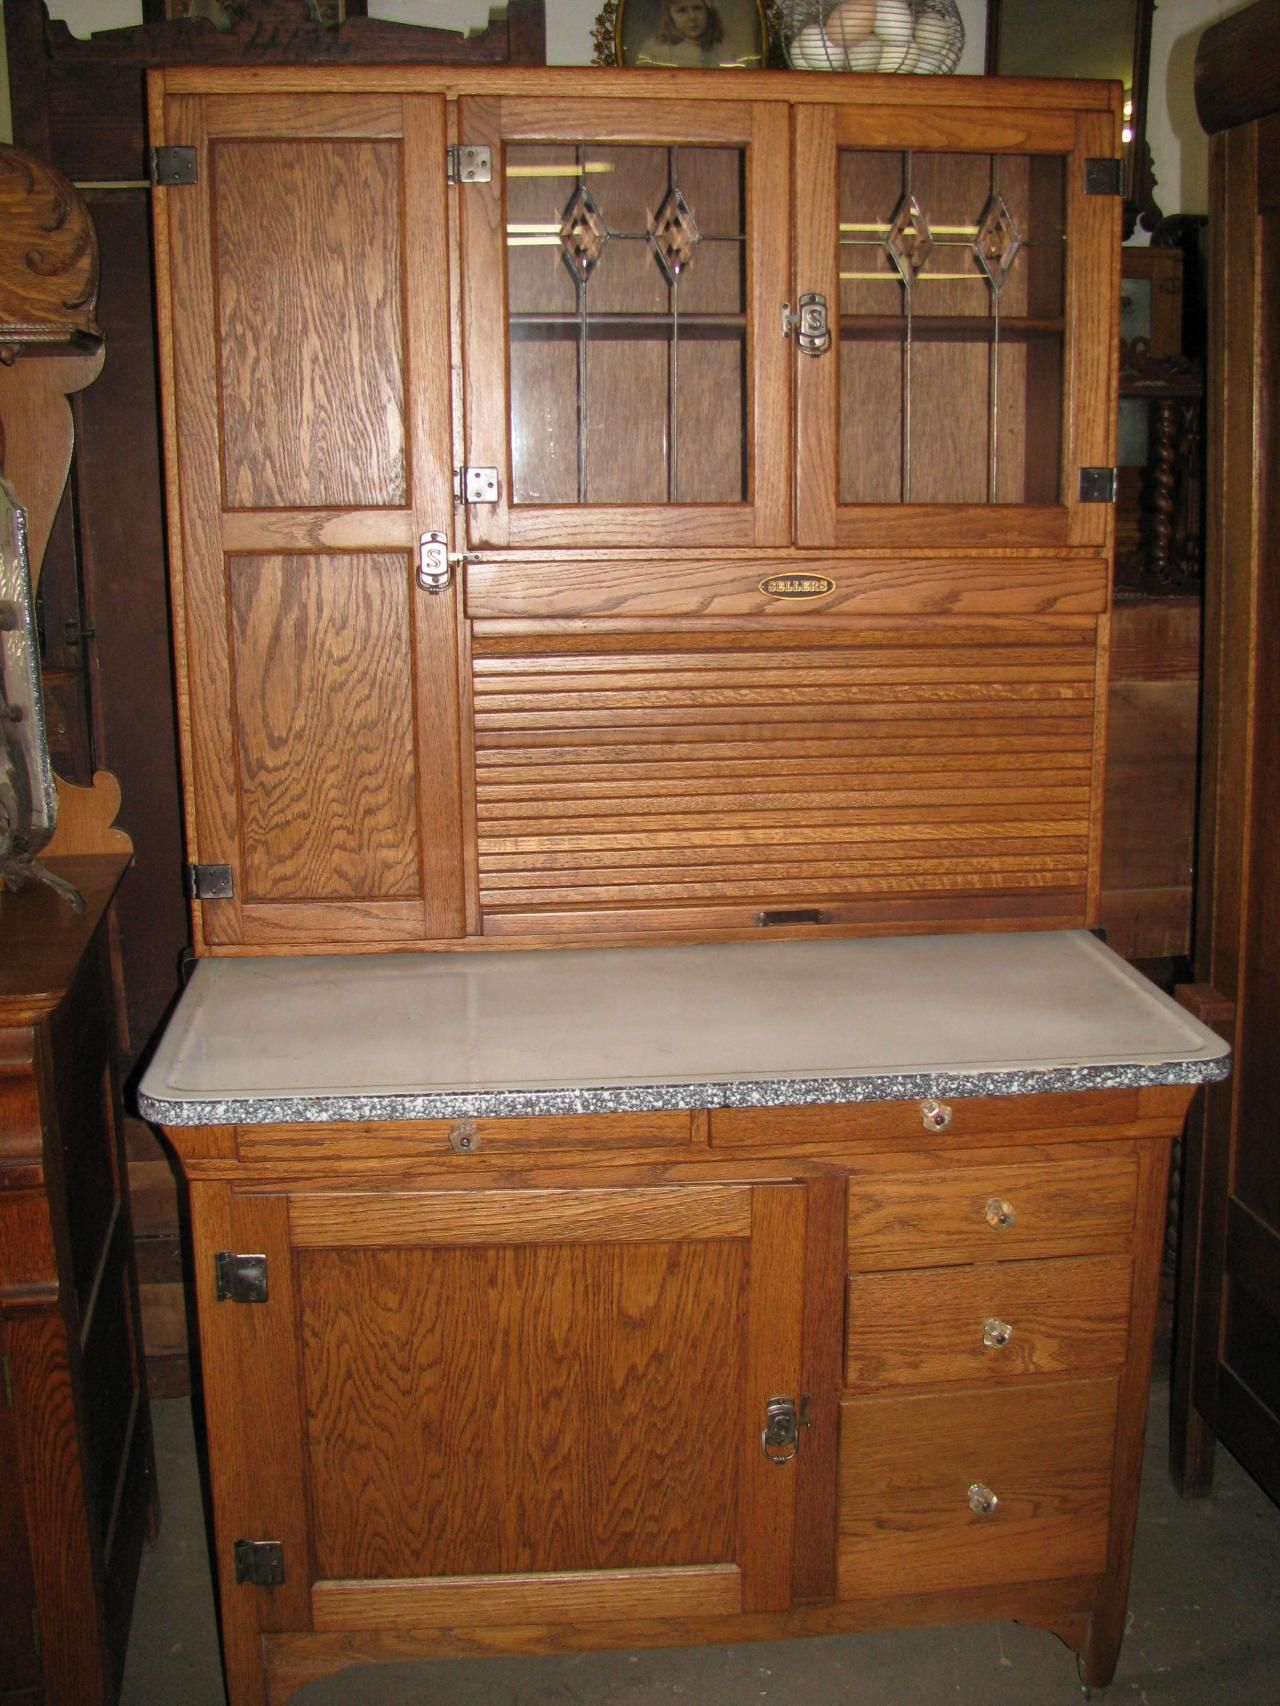 Antique Looking Kitchen Cabinets Sellers Kitchen Bakers Cabinet Circa 1917 1920 W Leaded